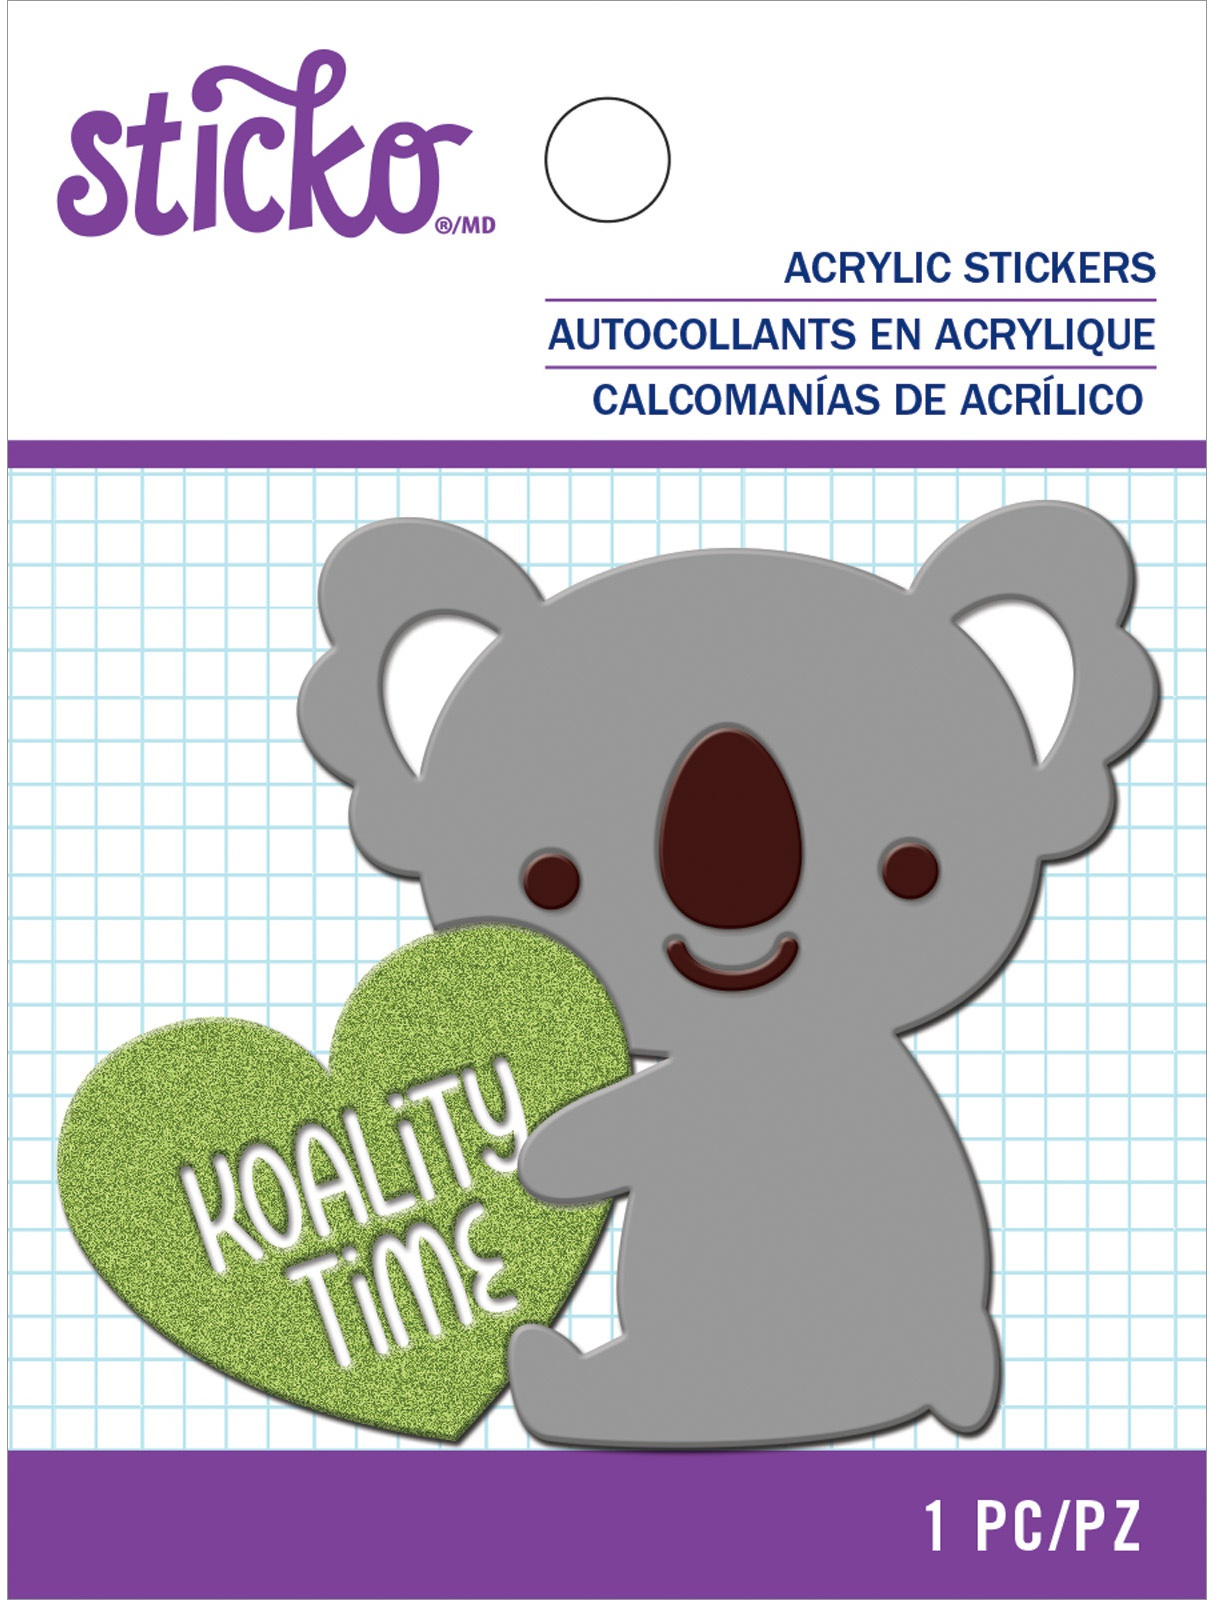 Sticko Acrlic Sticker-Quality Time